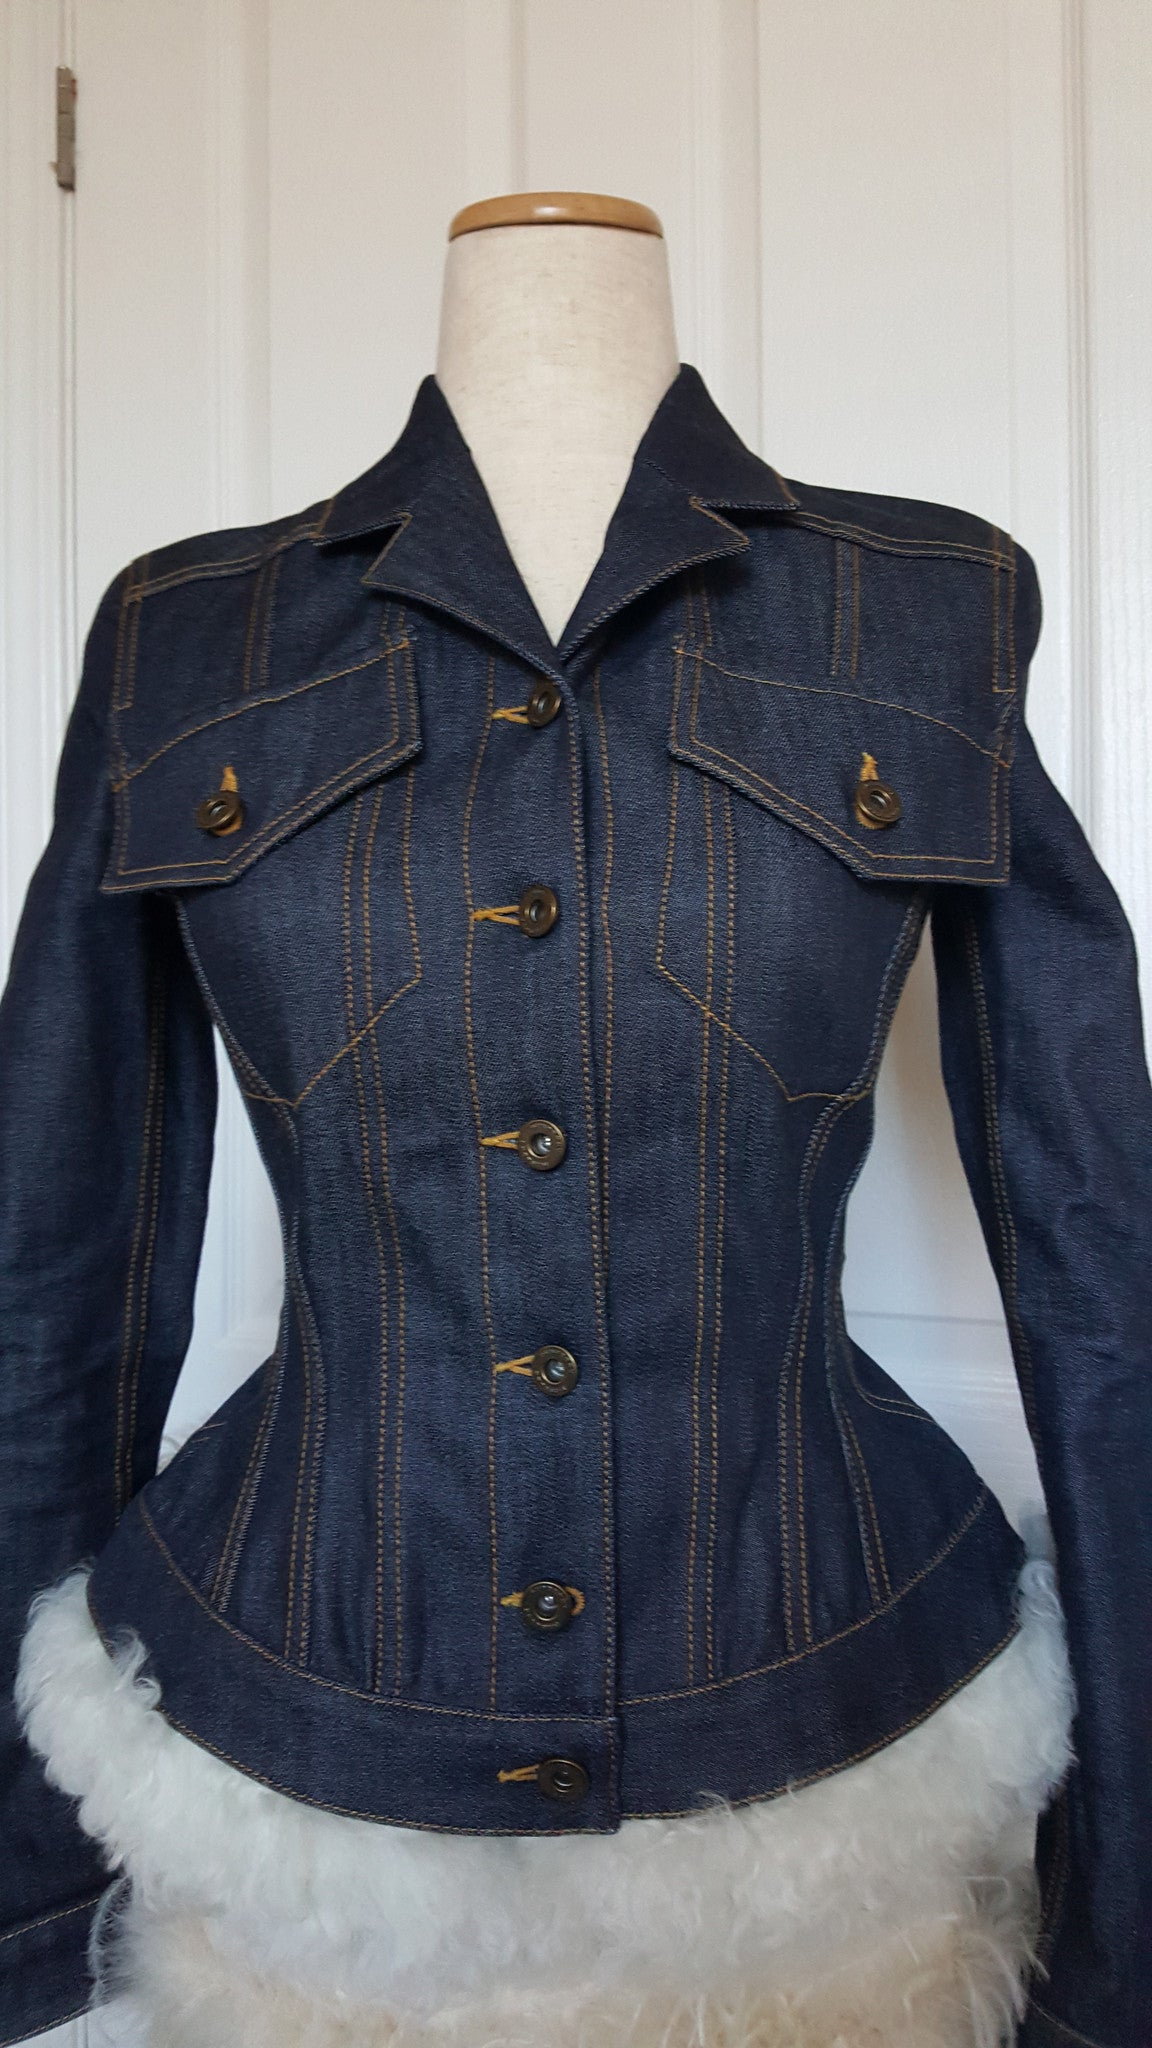 BURBERRY PRORSUM SHEARLING TRIMMED DENIM JACKET - SIZE US 4